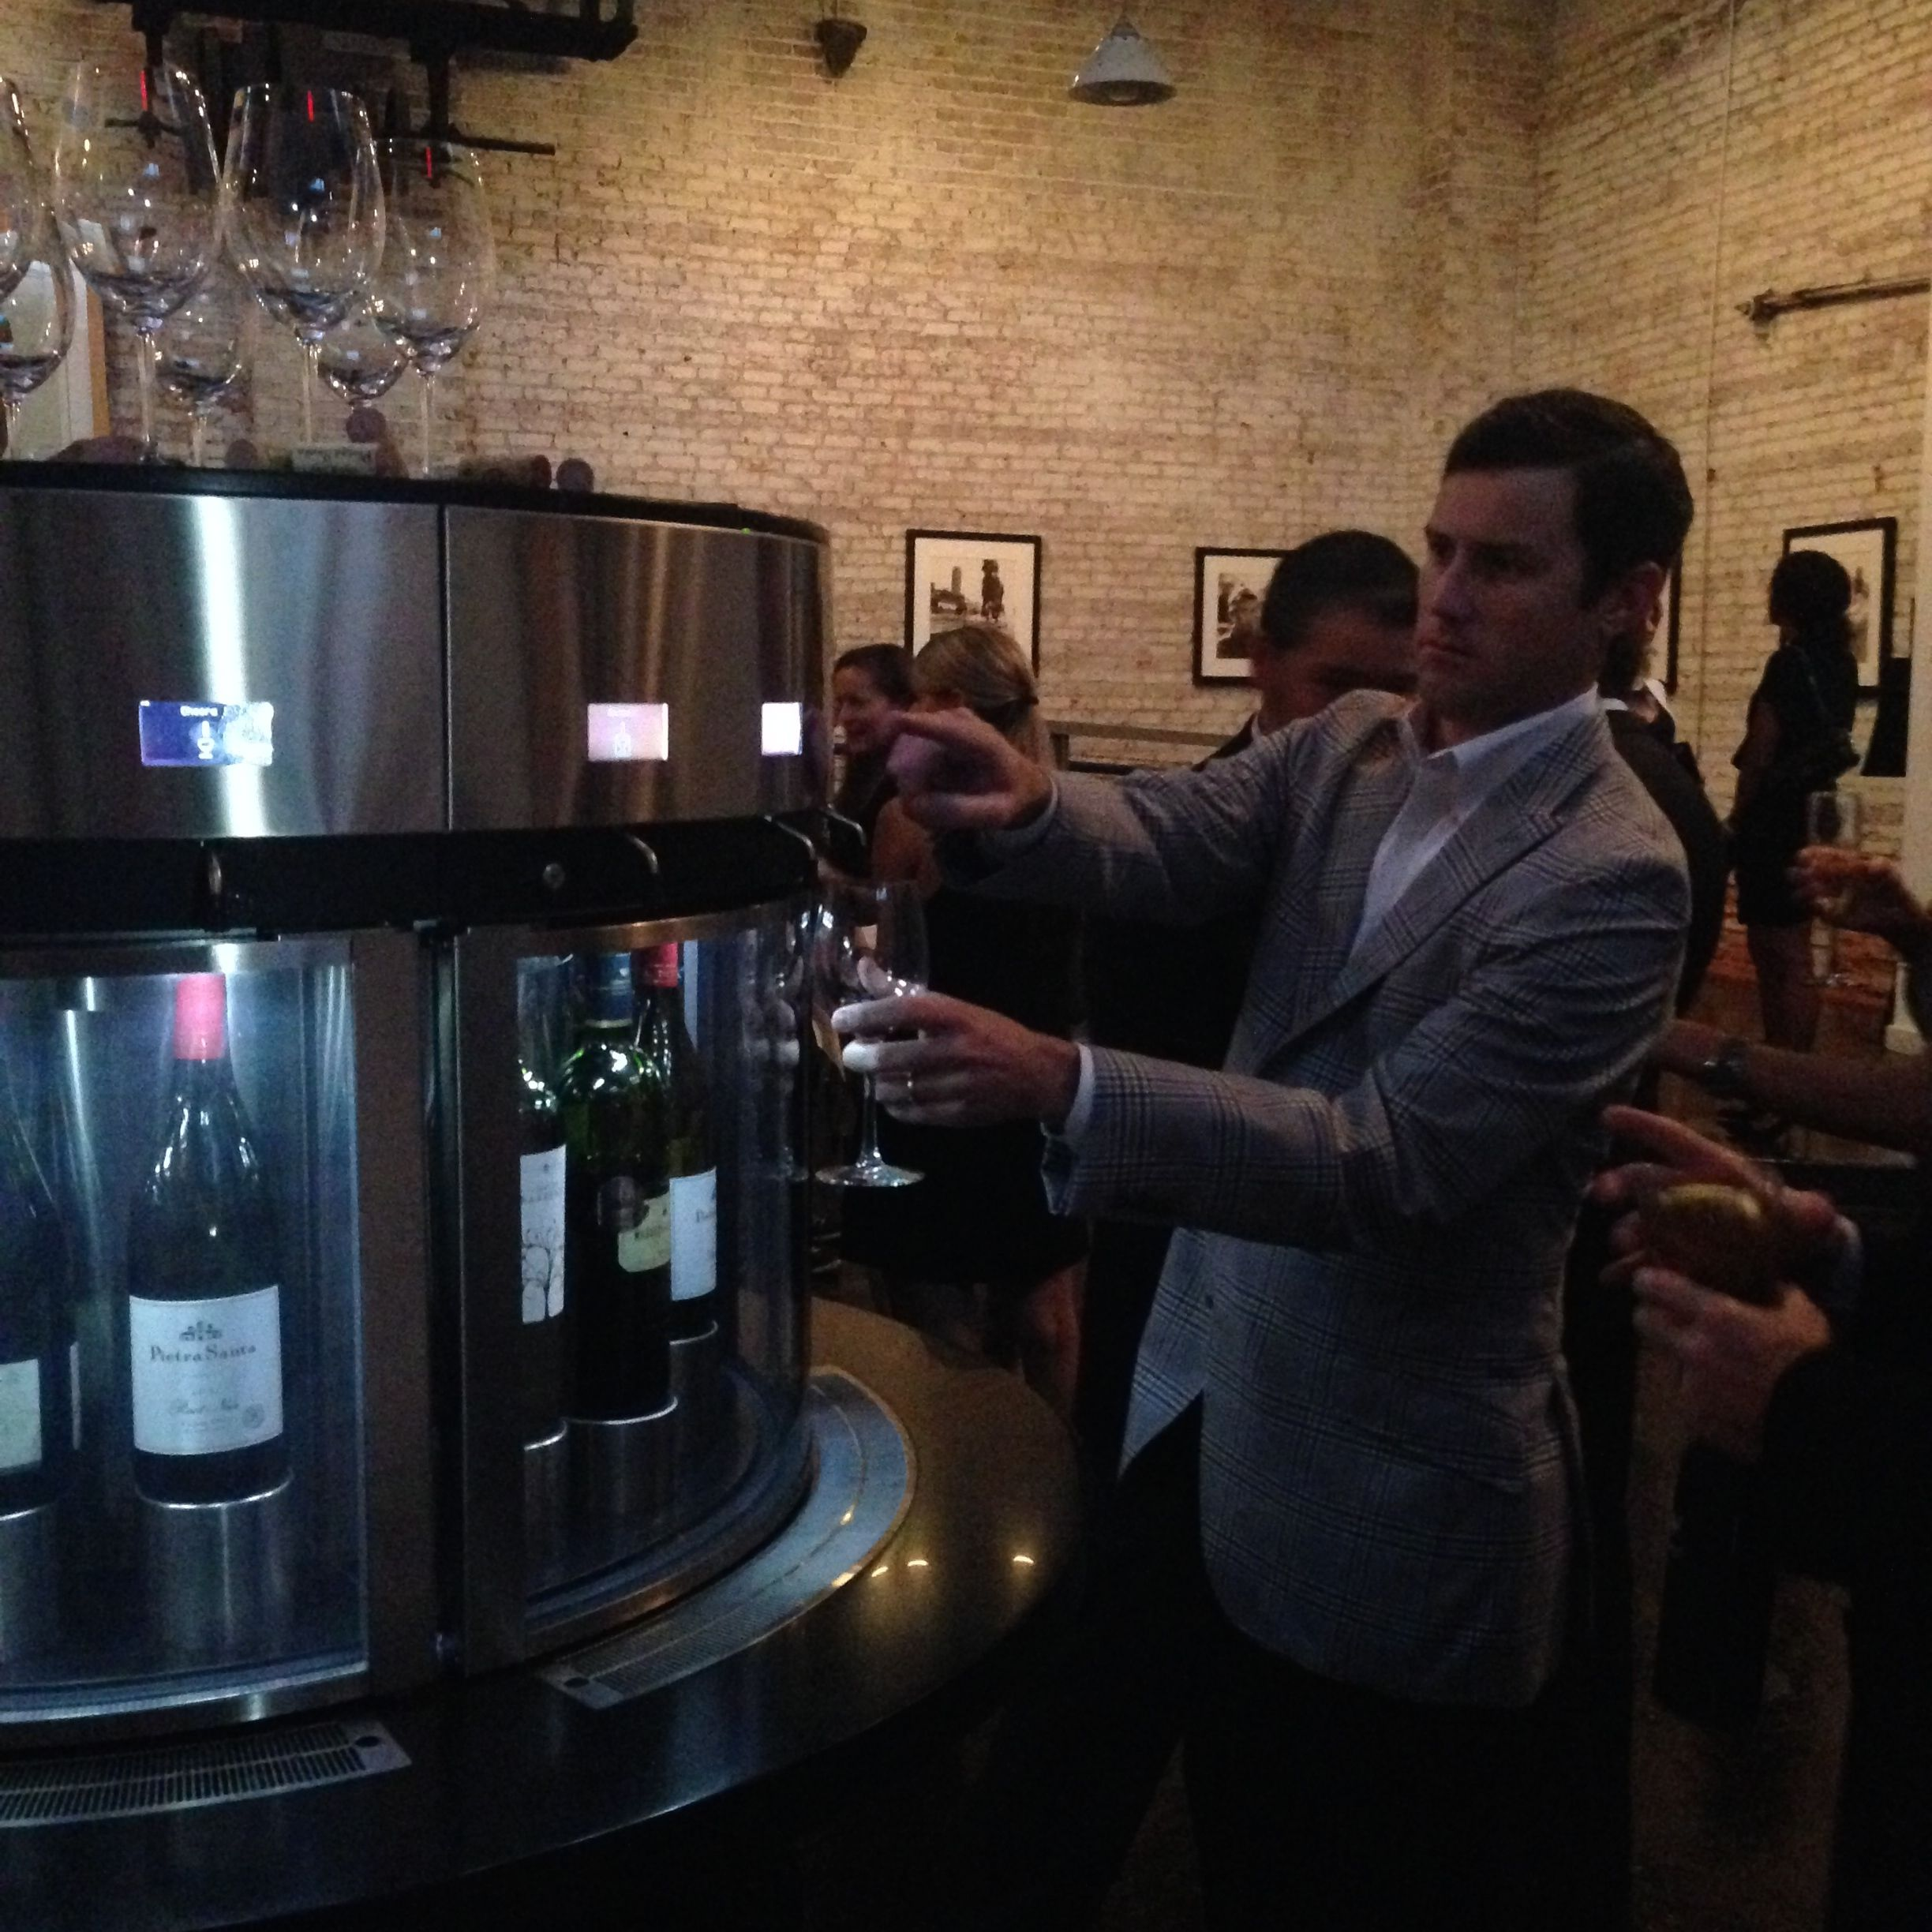 Guests poured wine from the dispenser